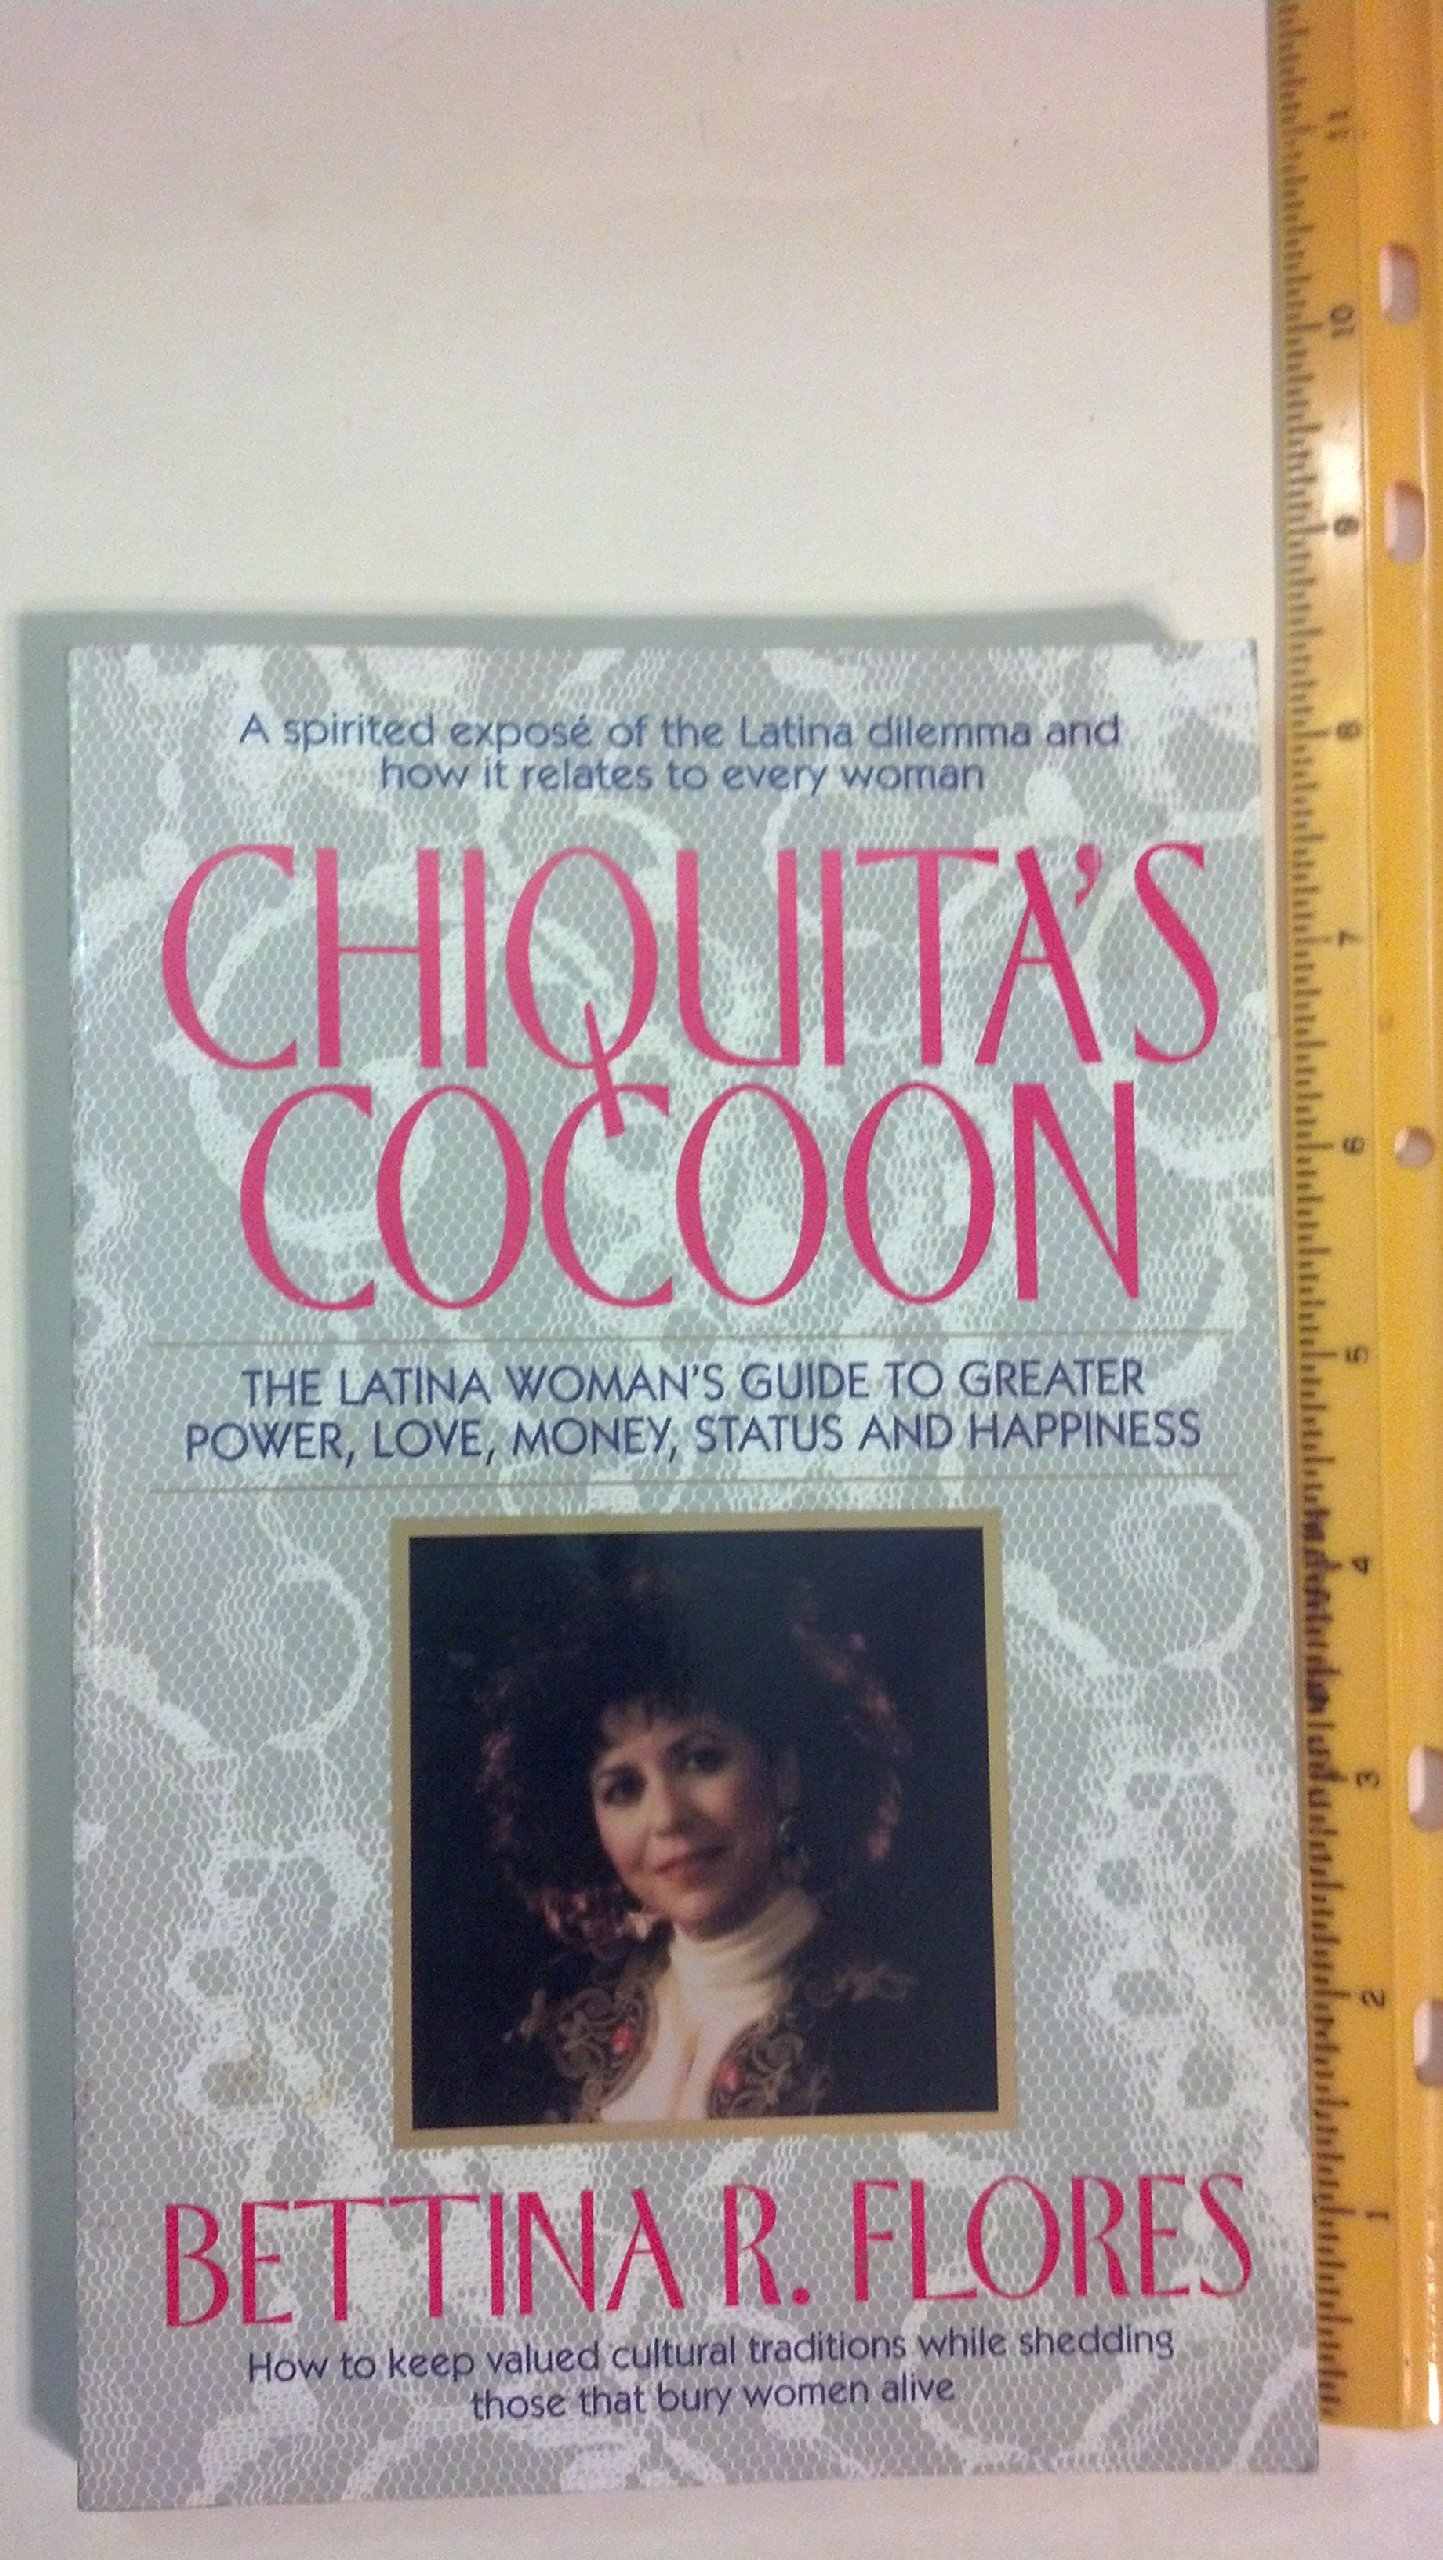 chiquita s cocoon the latina w s guide to greater power love chiquita s cocoon the latina w s guide to greater power love money status and happiness bettina r flores 9780679750444 com books